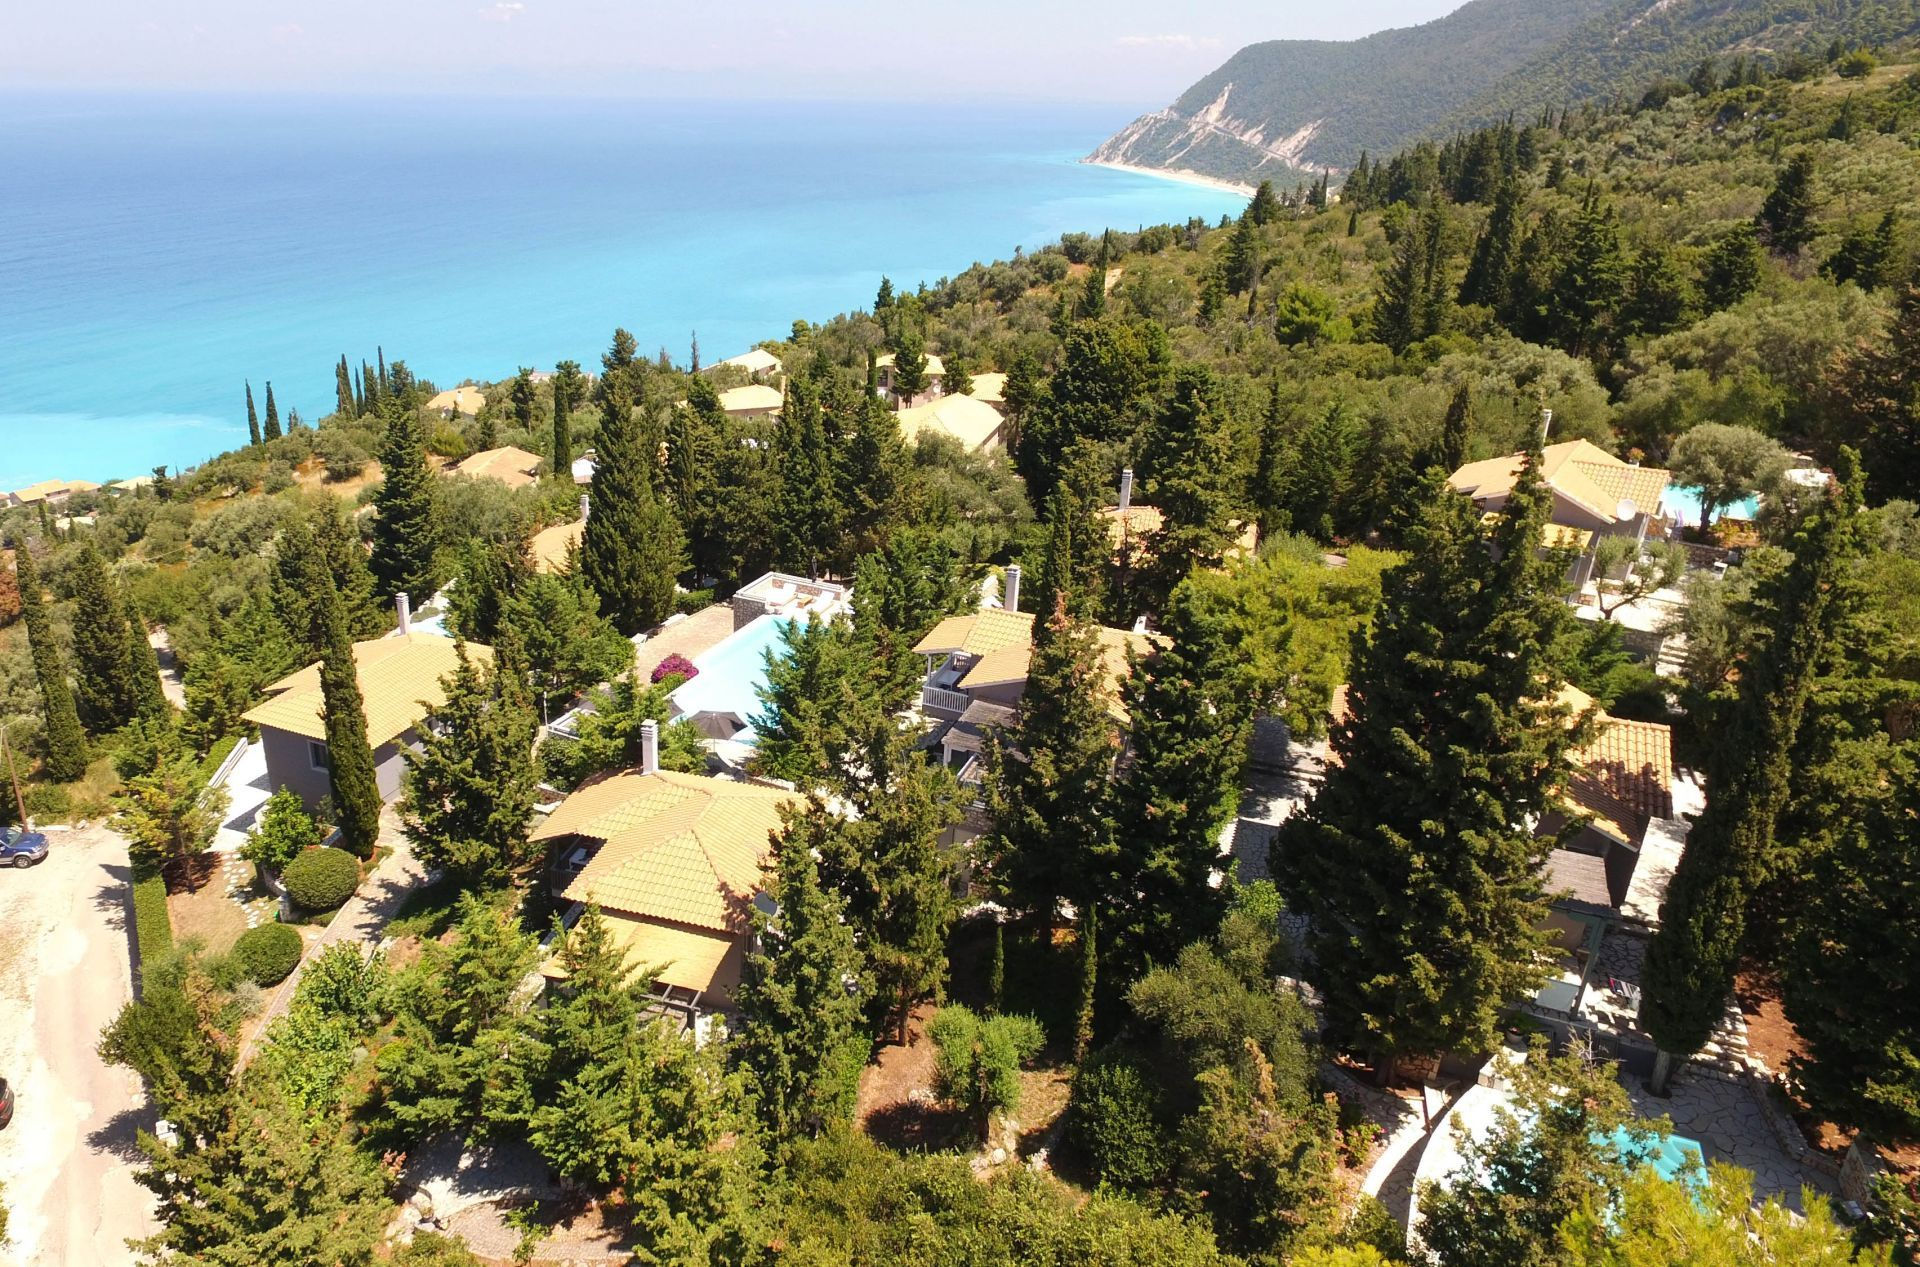 Accommodation and hotels in the Ionian